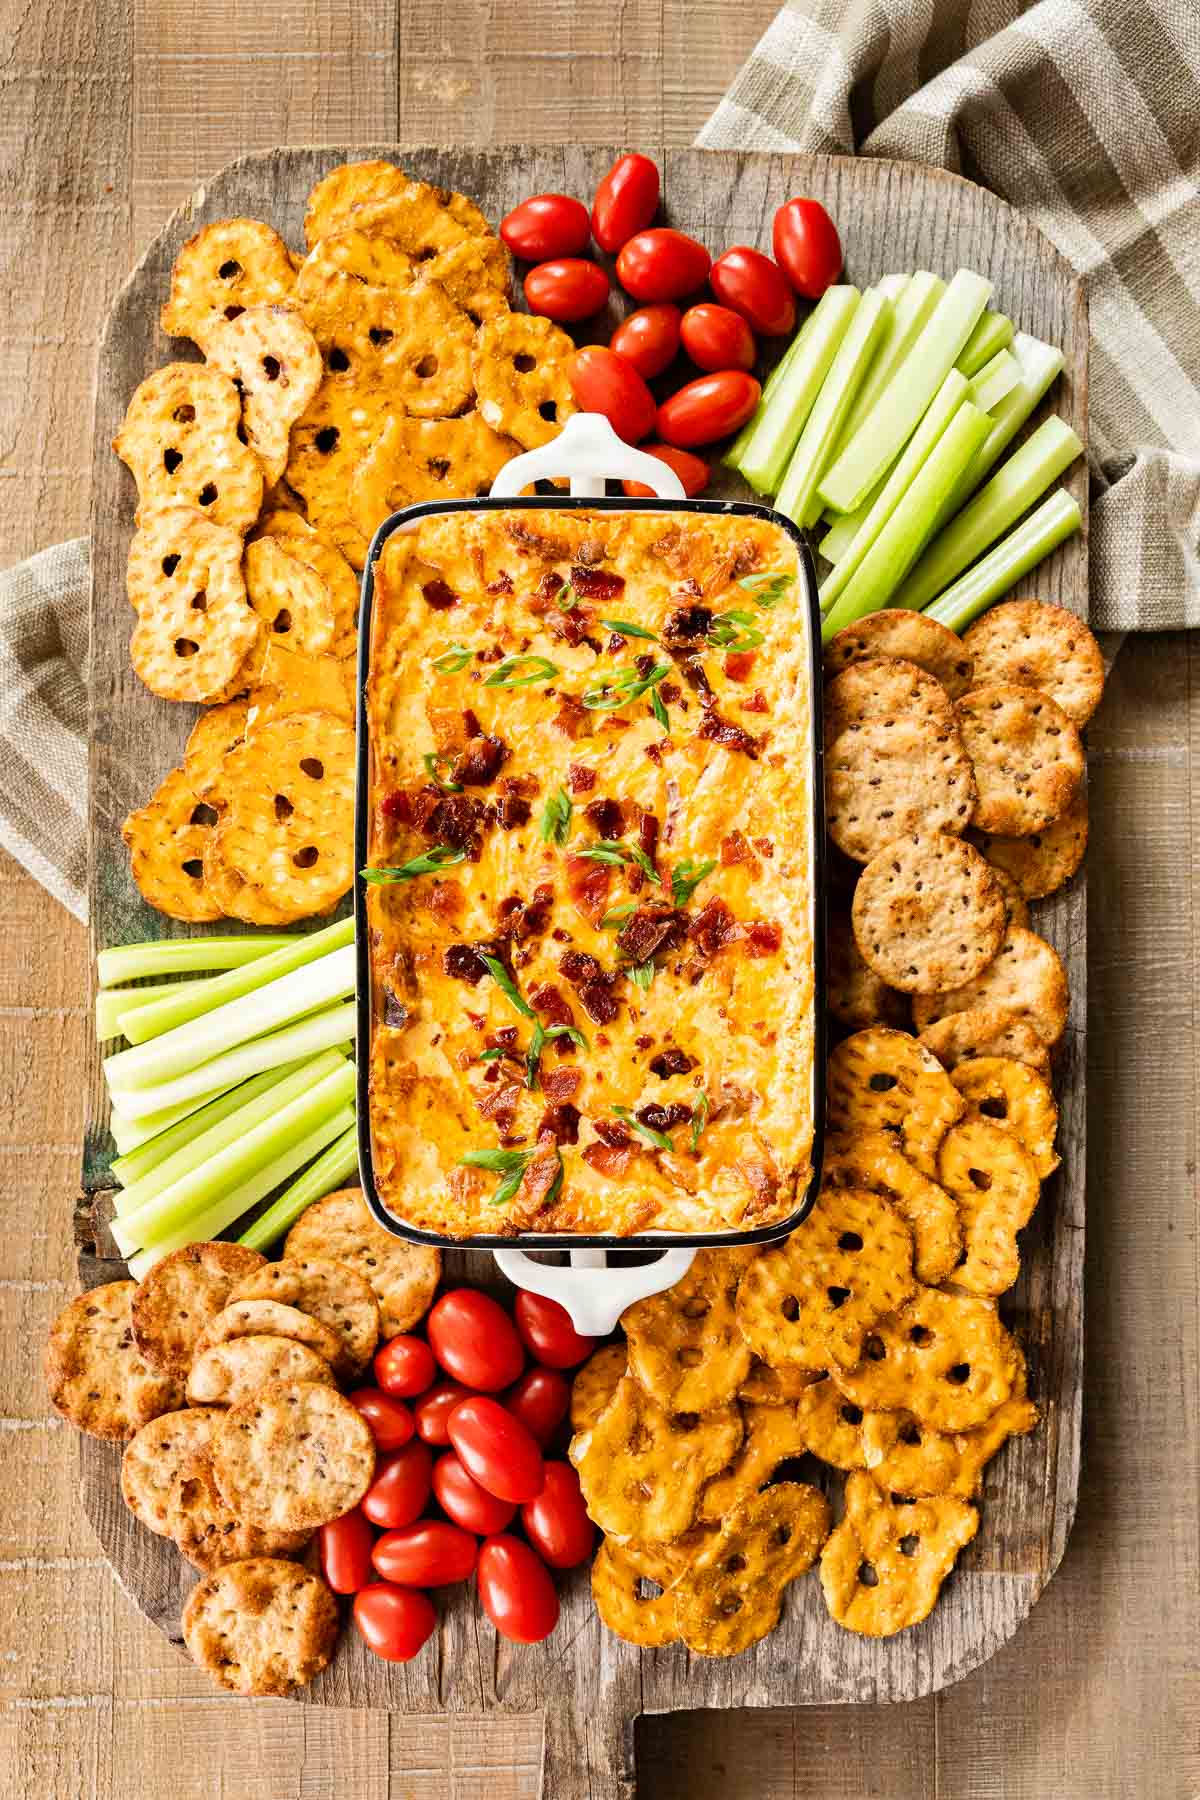 Hot Bacon Cheese Dip in baking dish with crackers and veggies